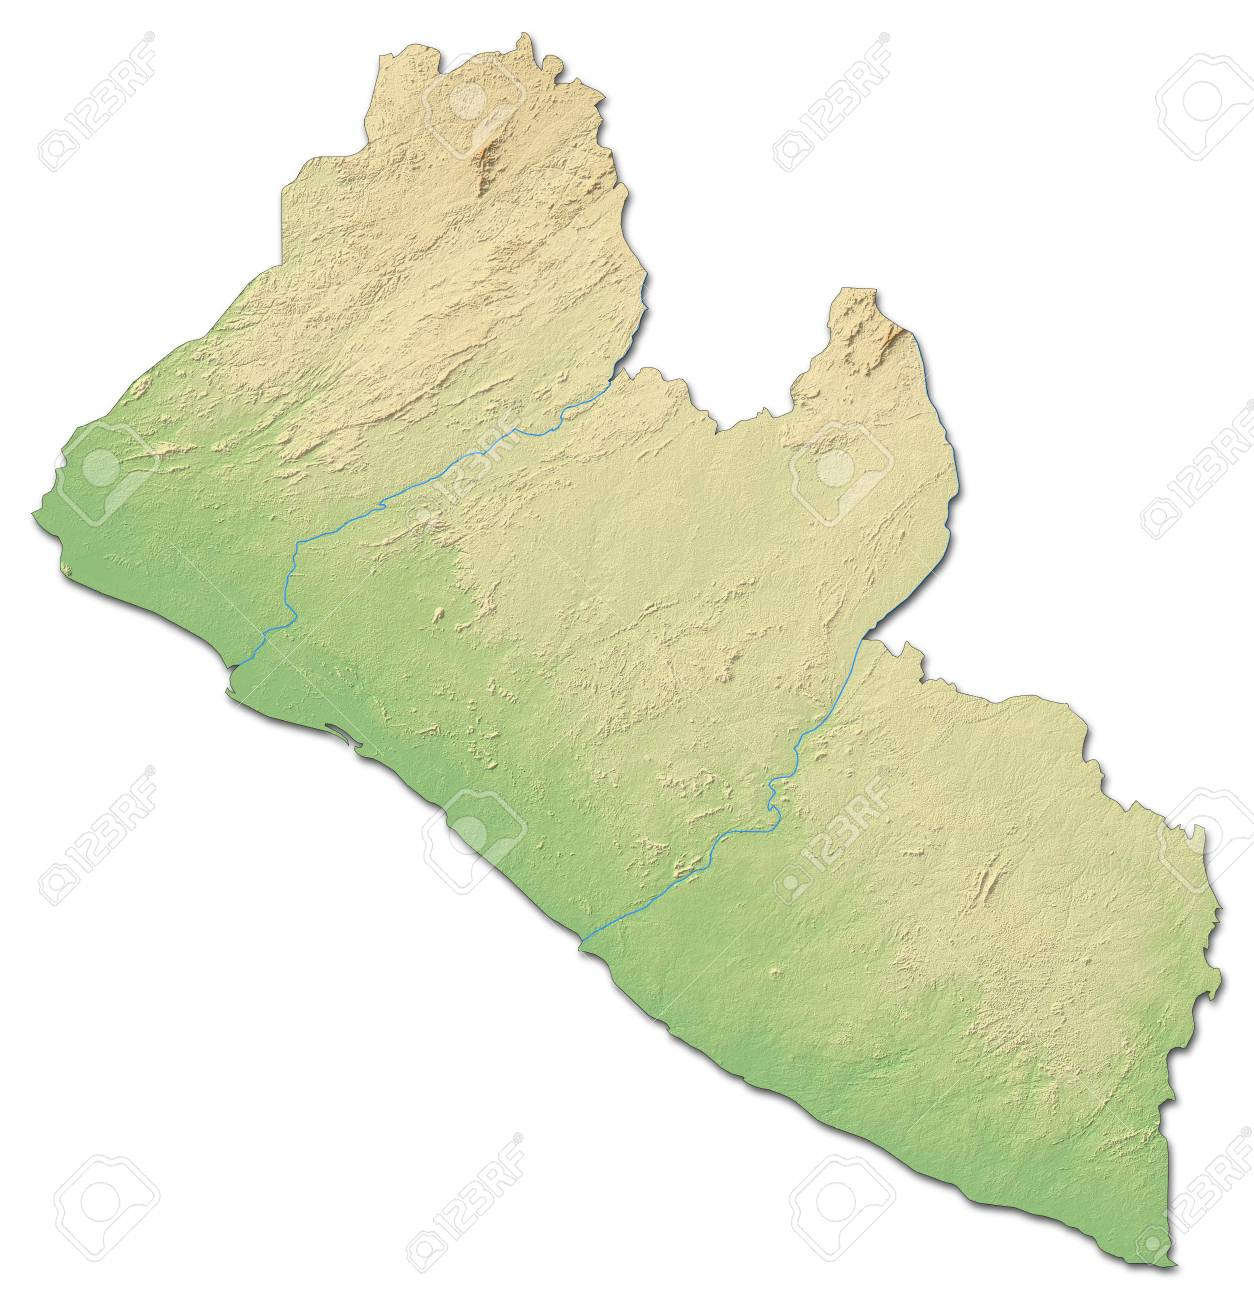 Relief map of Liberia with shaded relief.